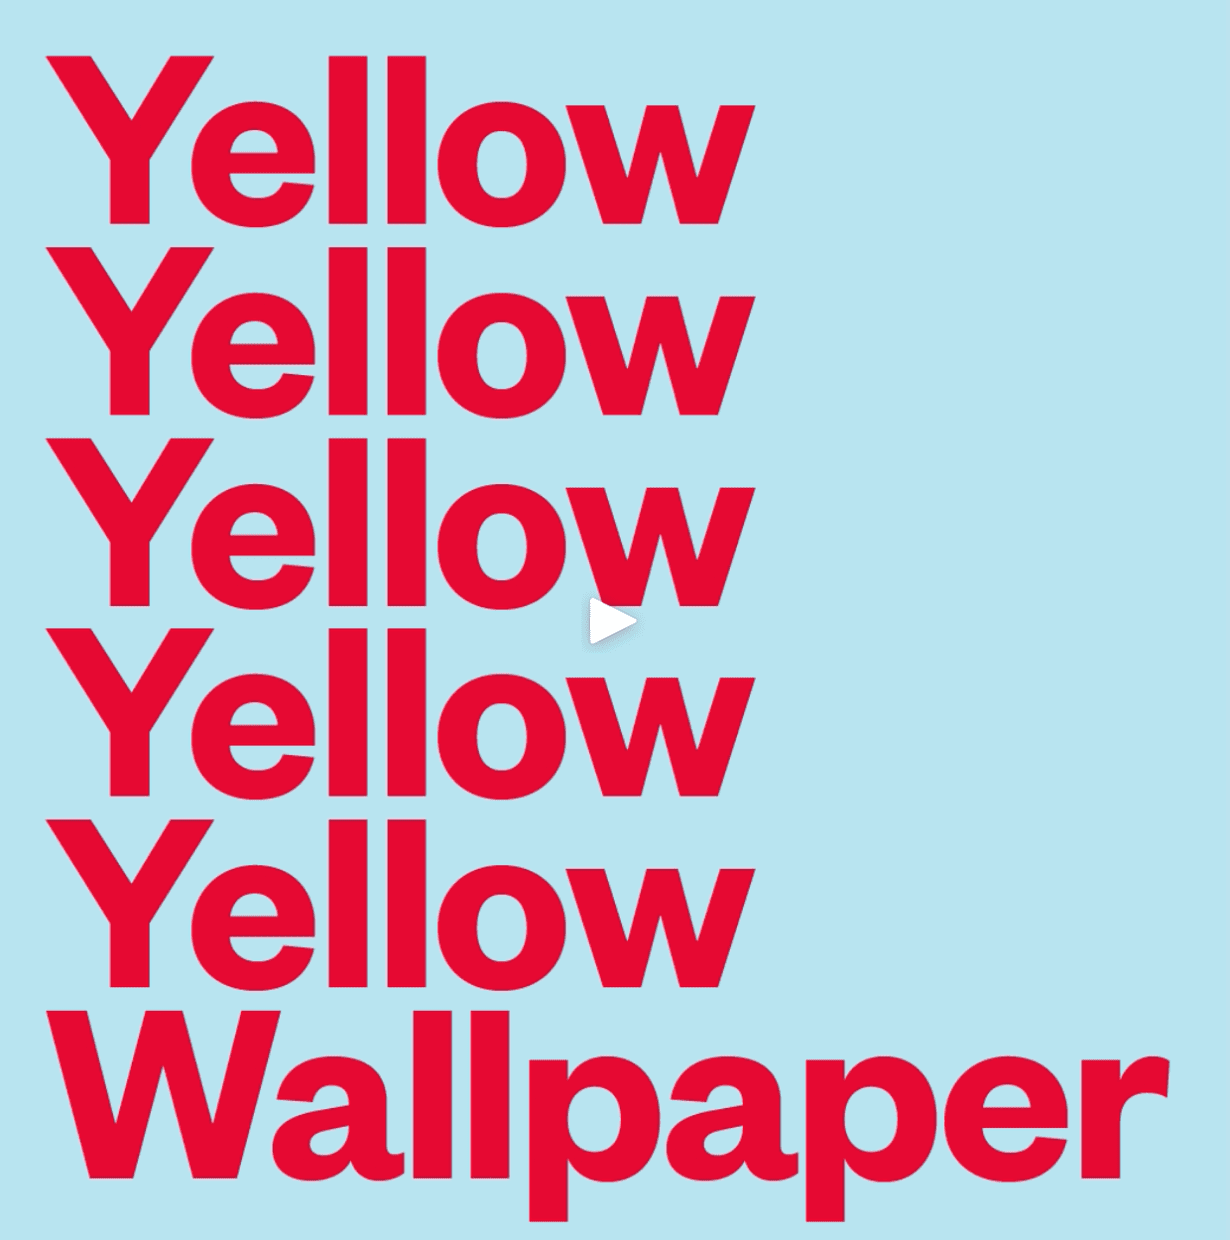 The Yellow Wallpaper Announcement Post